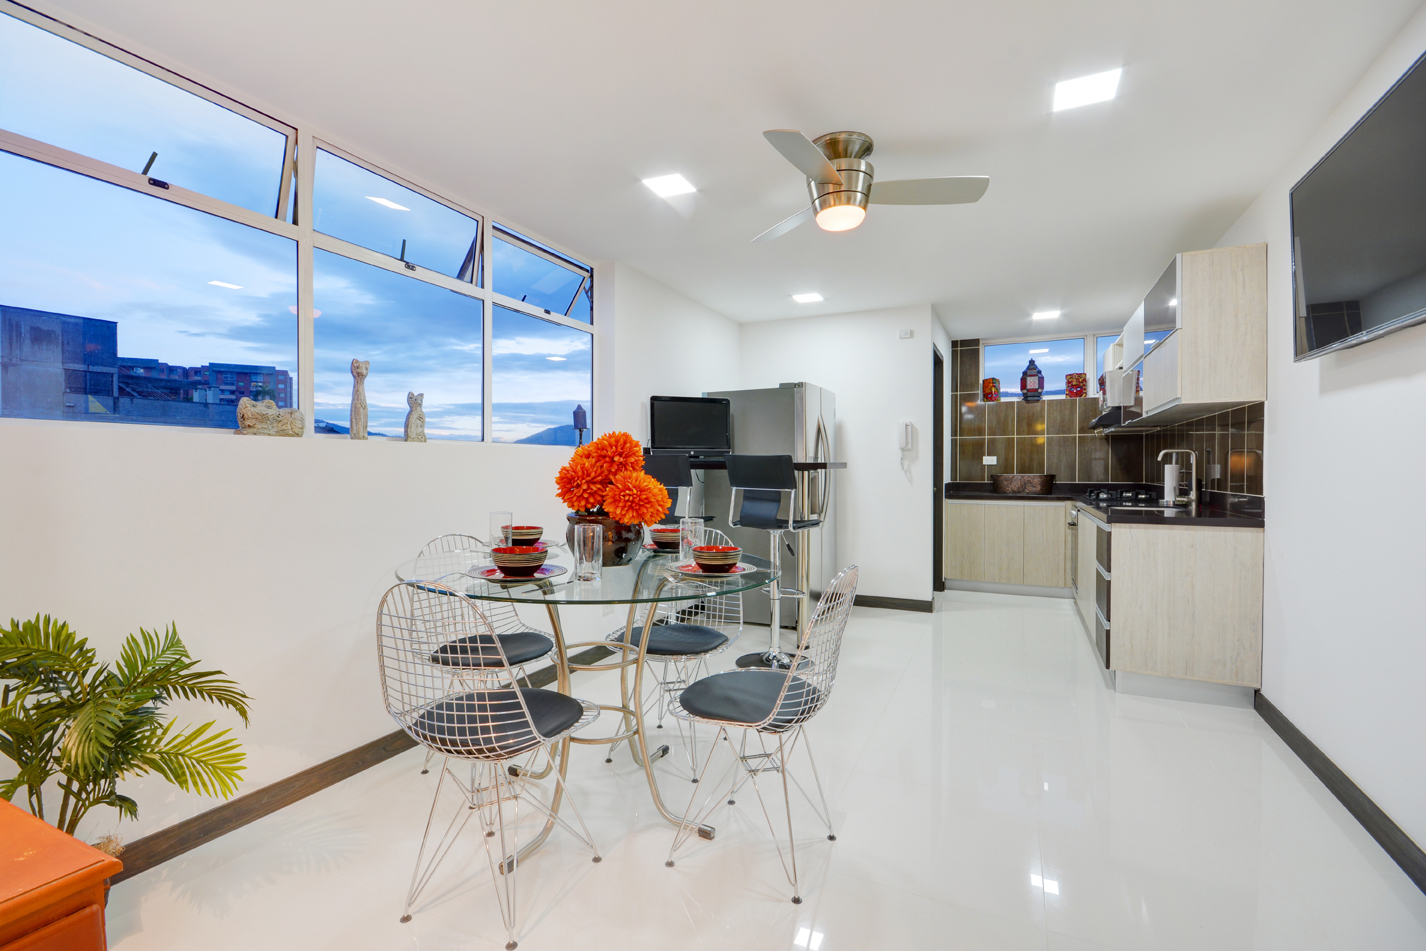 Kitchen and dining room in contemporary Medellin apartment for rent